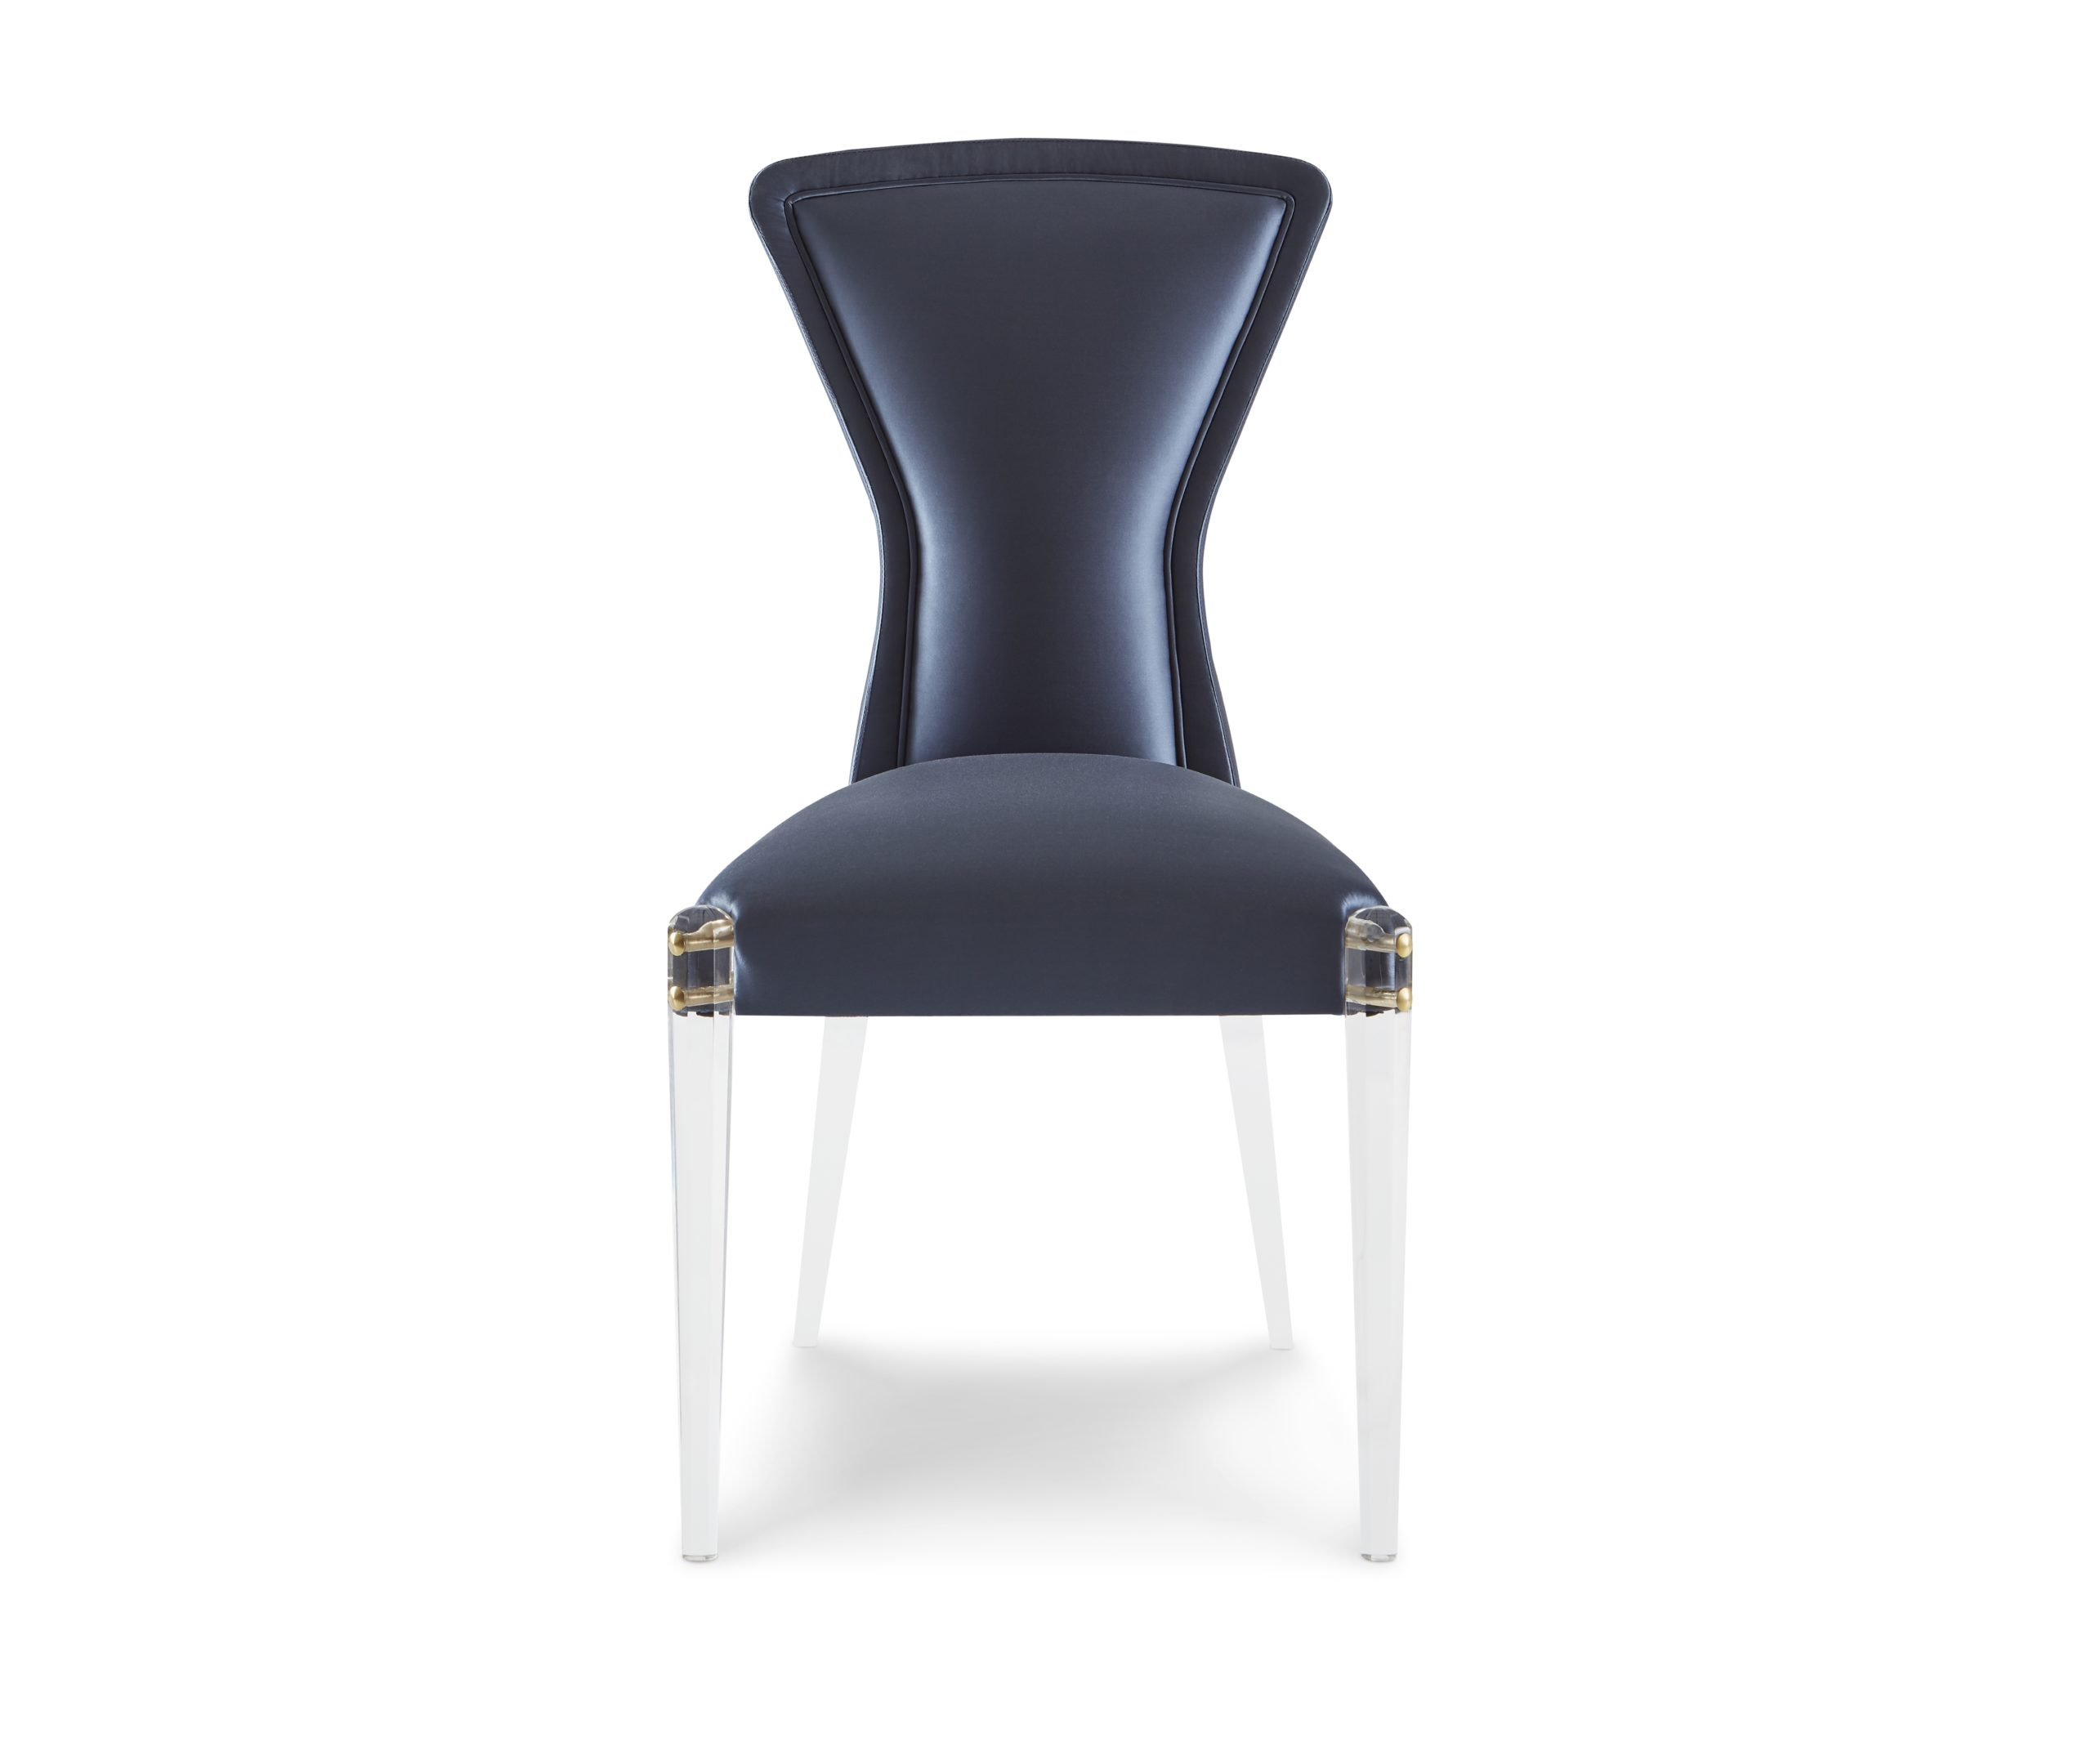 Baker_products_WNWN_ila_chair_BAA3241_FRONT-scaled-2